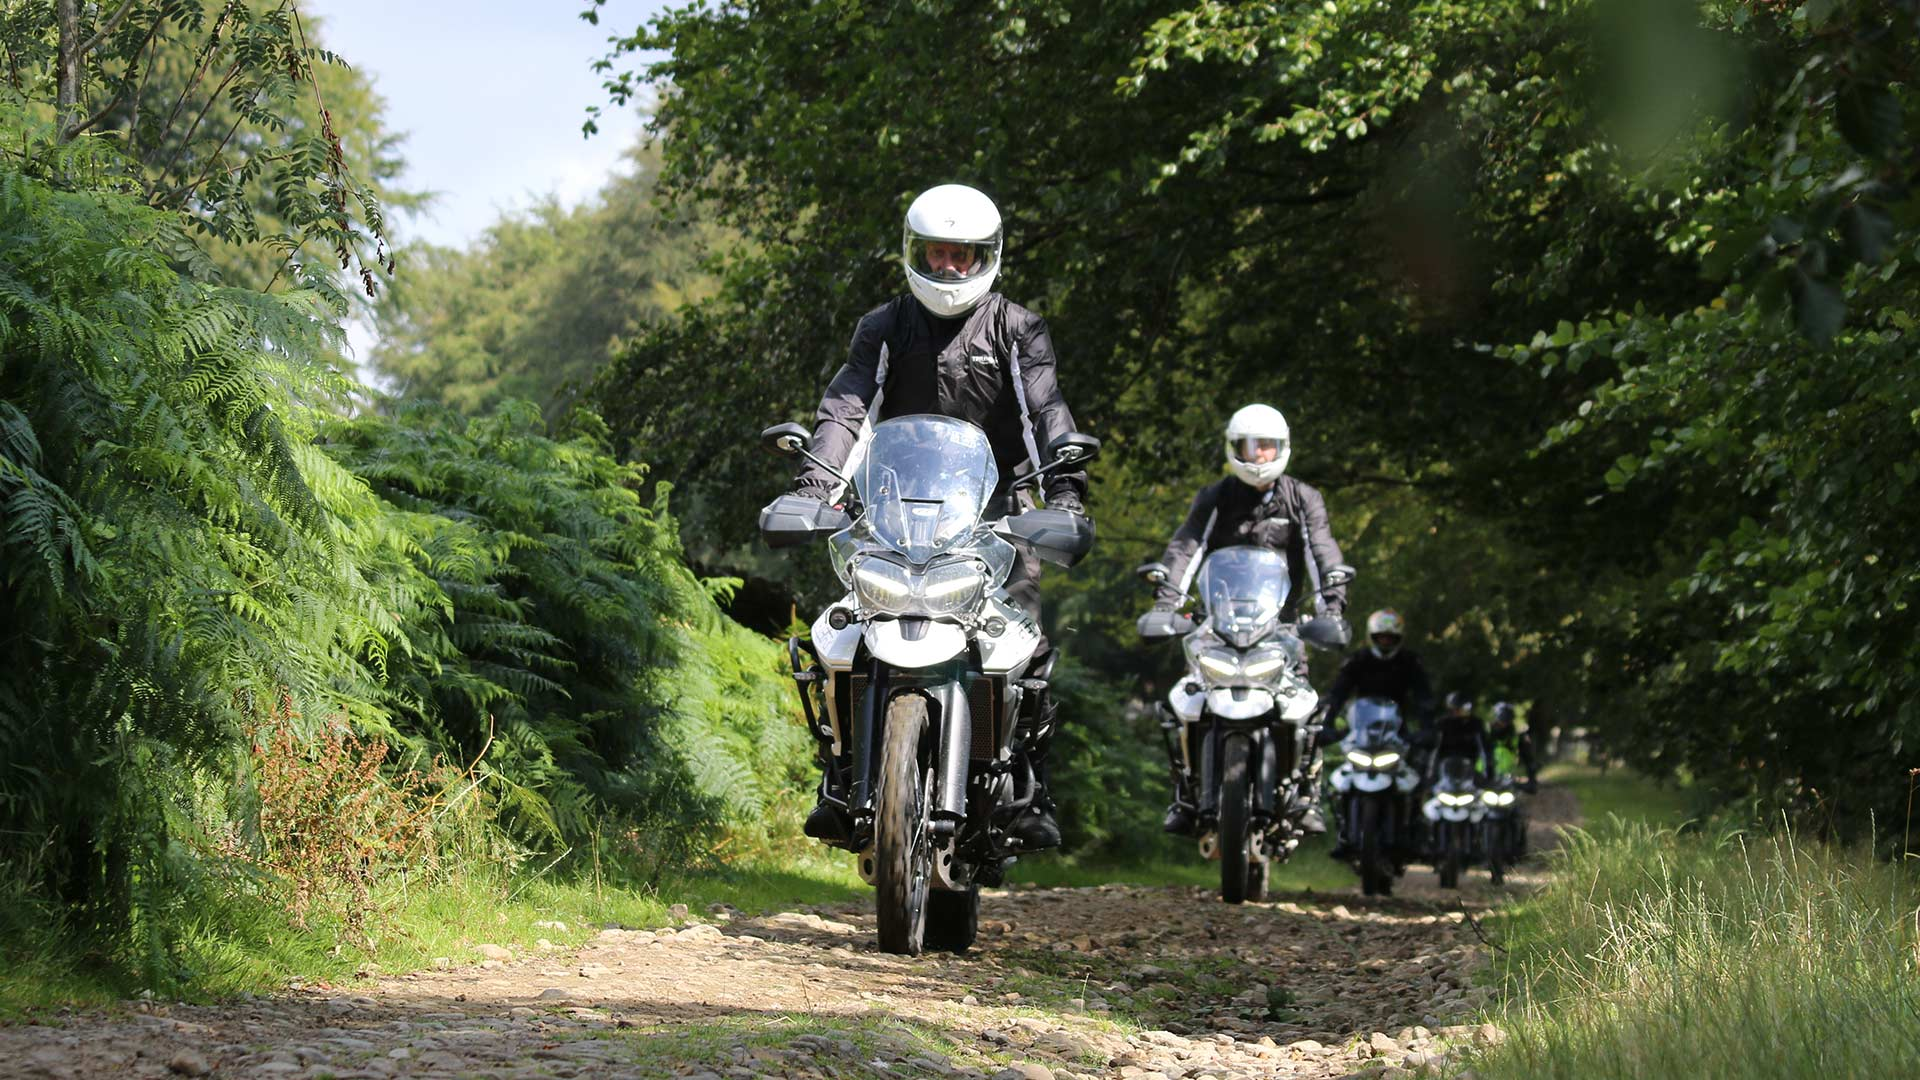 Triumph Adventure Experience Tiger day in South Wales, UK